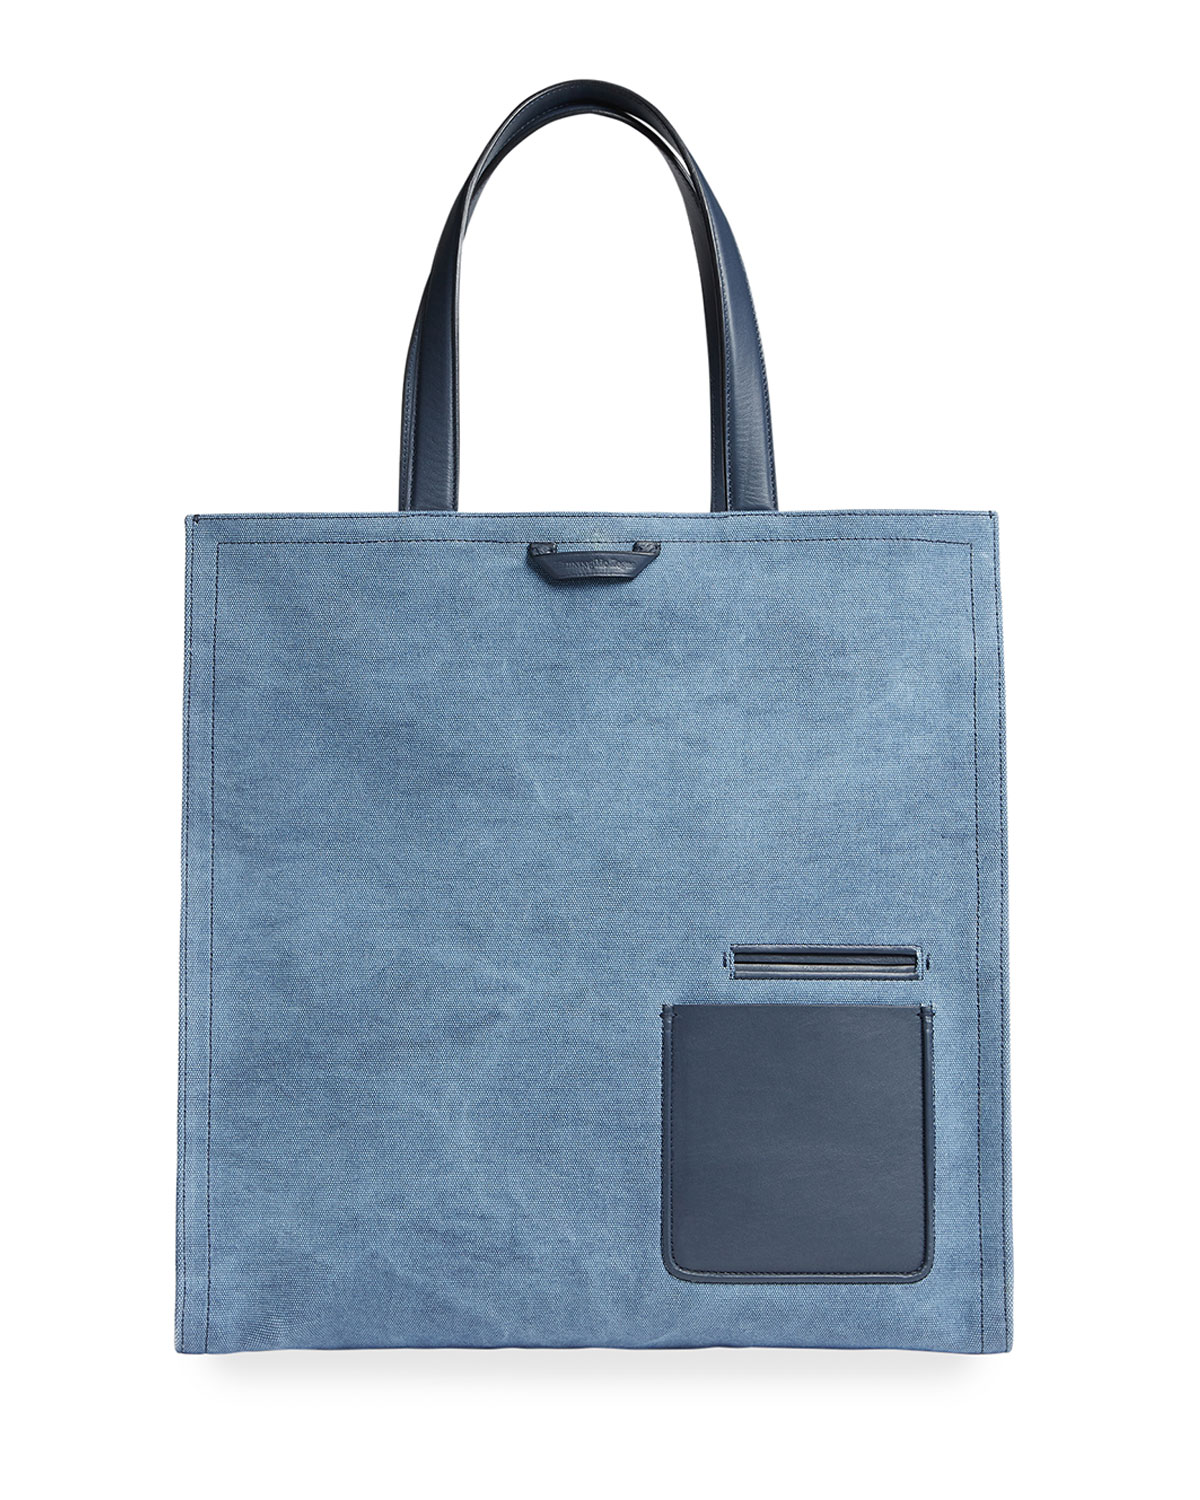 Ermenegildo Zegna MEN'S BLAZER CANVAS TOTE BAG